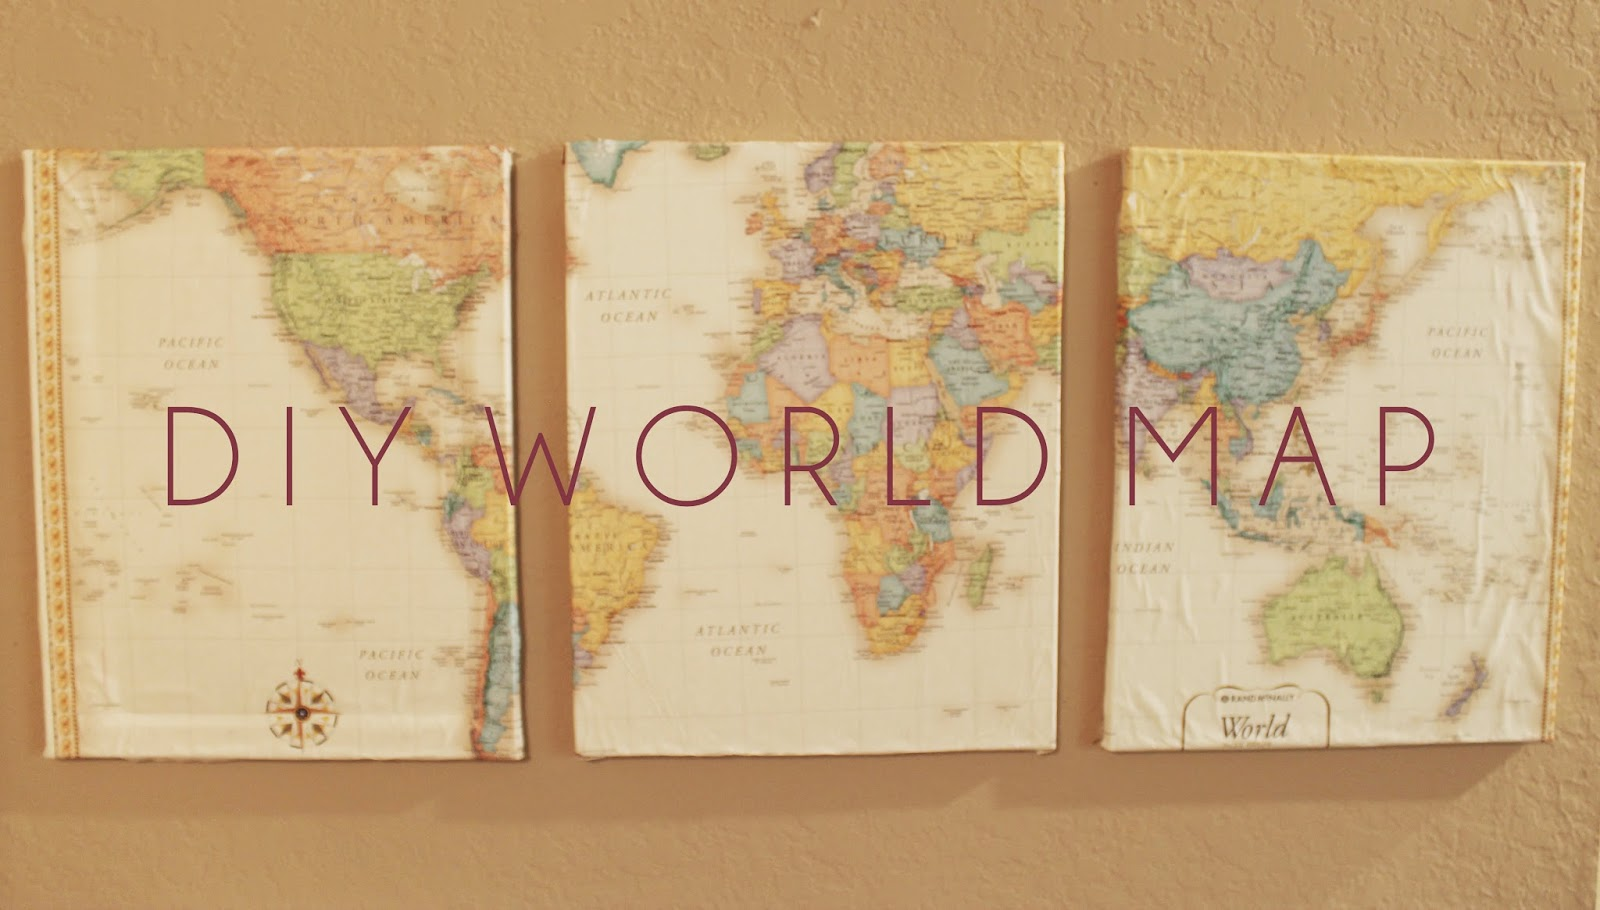 Map of the world hobby lobby map of the world hobby lobby 3 canvases i used the ones that come in gumiabroncs Choice Image